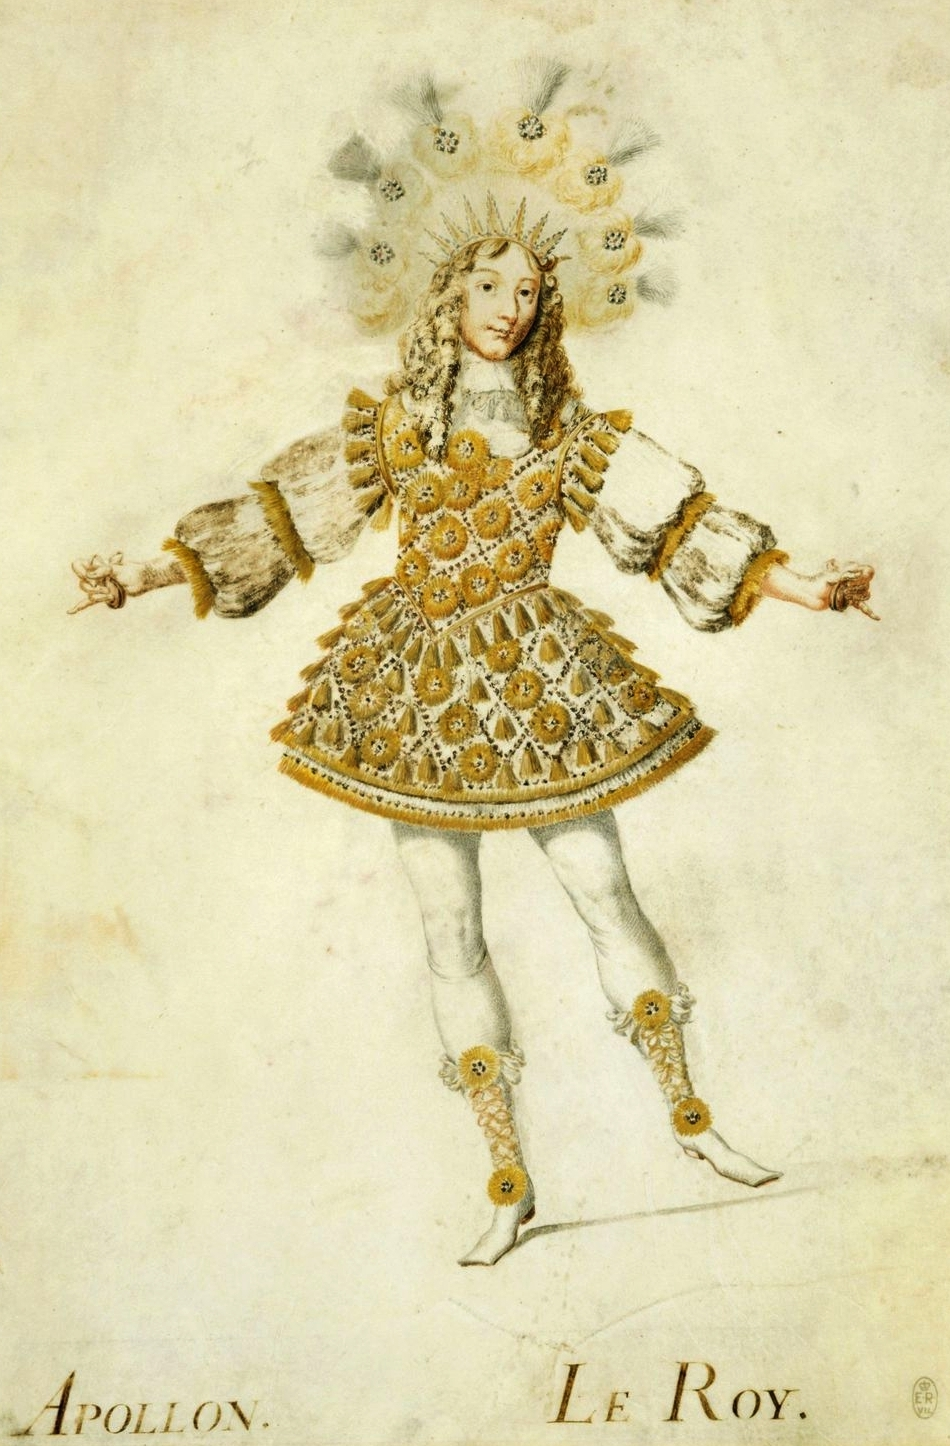 Louis XIV in ballet costume